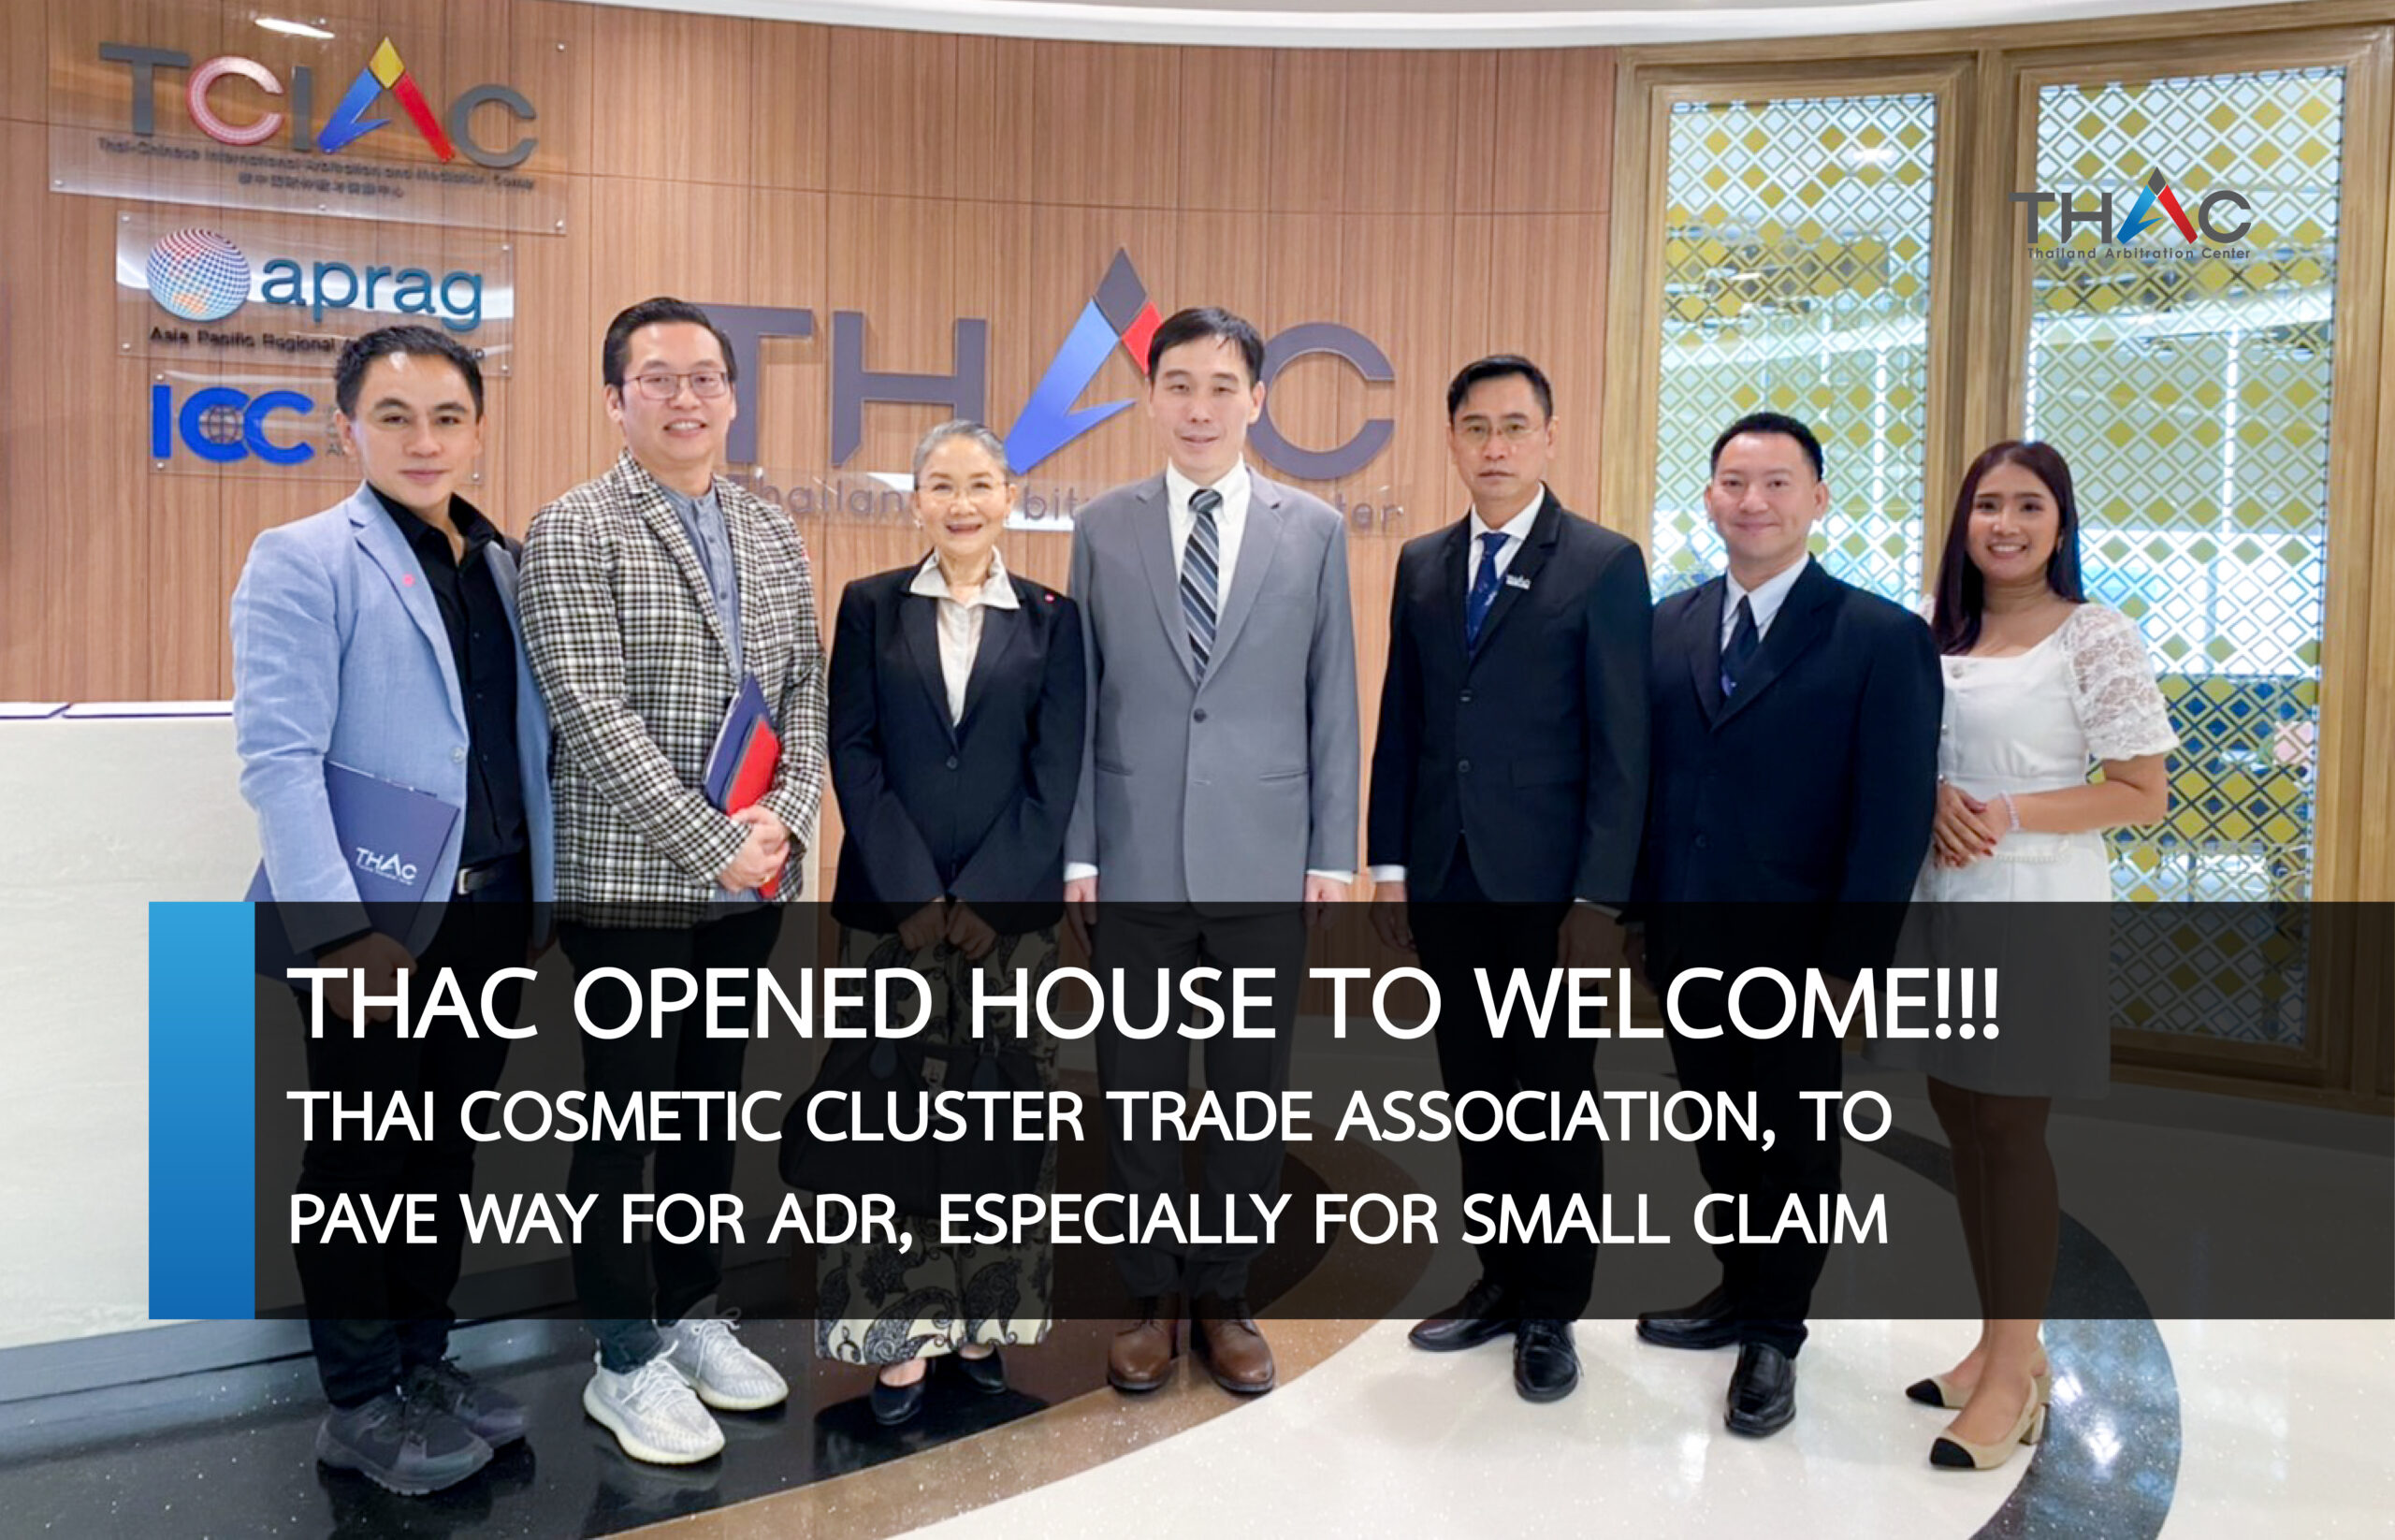 THAC OPENED HOUSE TO WELCOME!!! THAI COSMETIC CLUSTER TRADE ASSOCIATION, TO PAVE WAY FOR ADR, ESPECIALLY FOR SMALL CLAIM